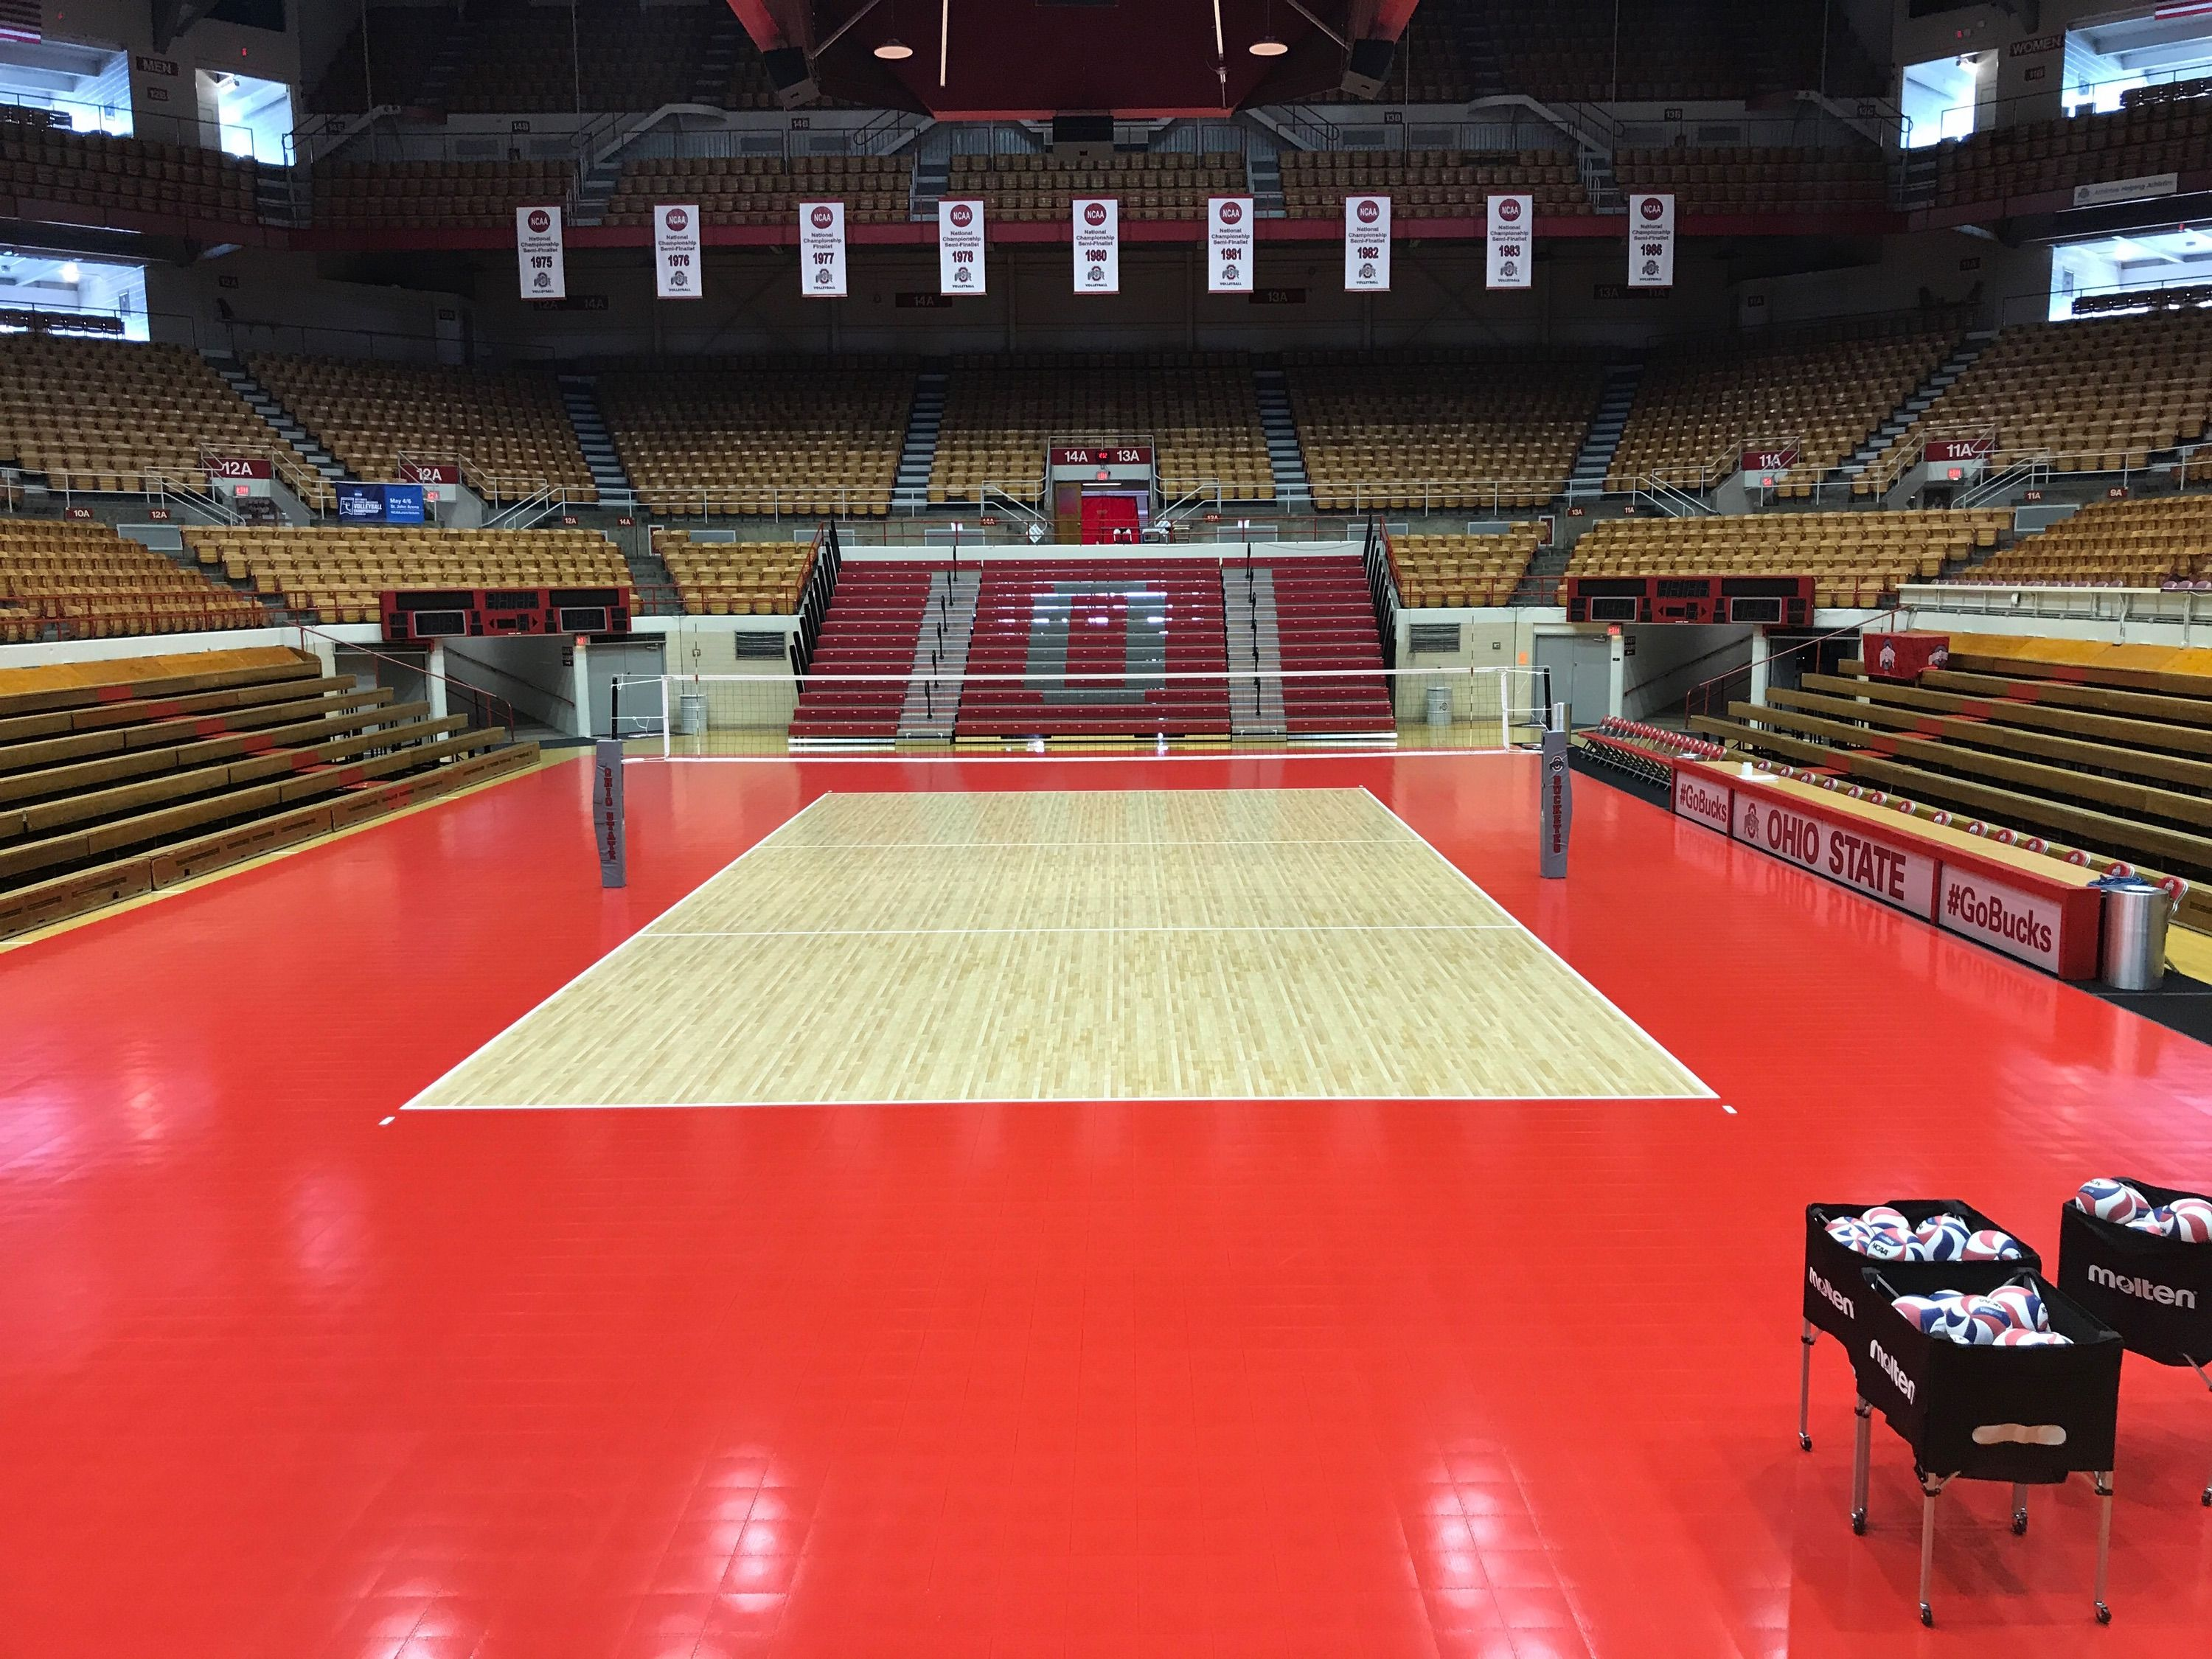 2017 Ncaa Men S Volleyball National Championship Sports Imports Indoor Volleyball Equipment Photo Courtesy Osu At Volleyball National Championship Volleyball Equipment Outdoor Volleyball Net